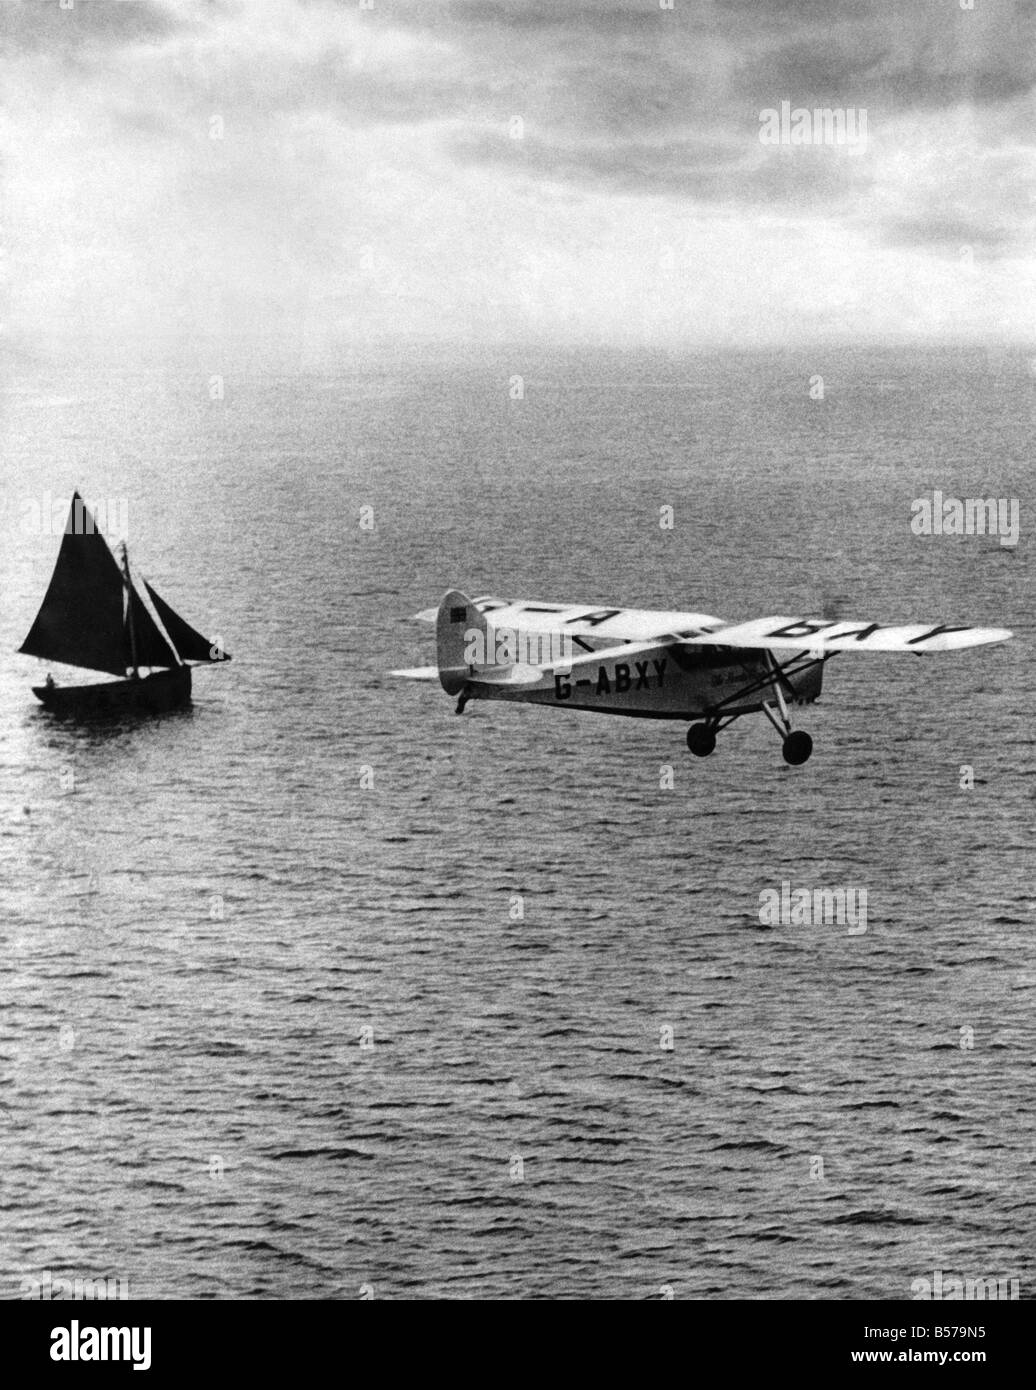 The De Havilland D.H.80A Puss Moth The HeartÕs Content with a D.H. Gipsy Major engine is pictured over the AtlanticStock Photo